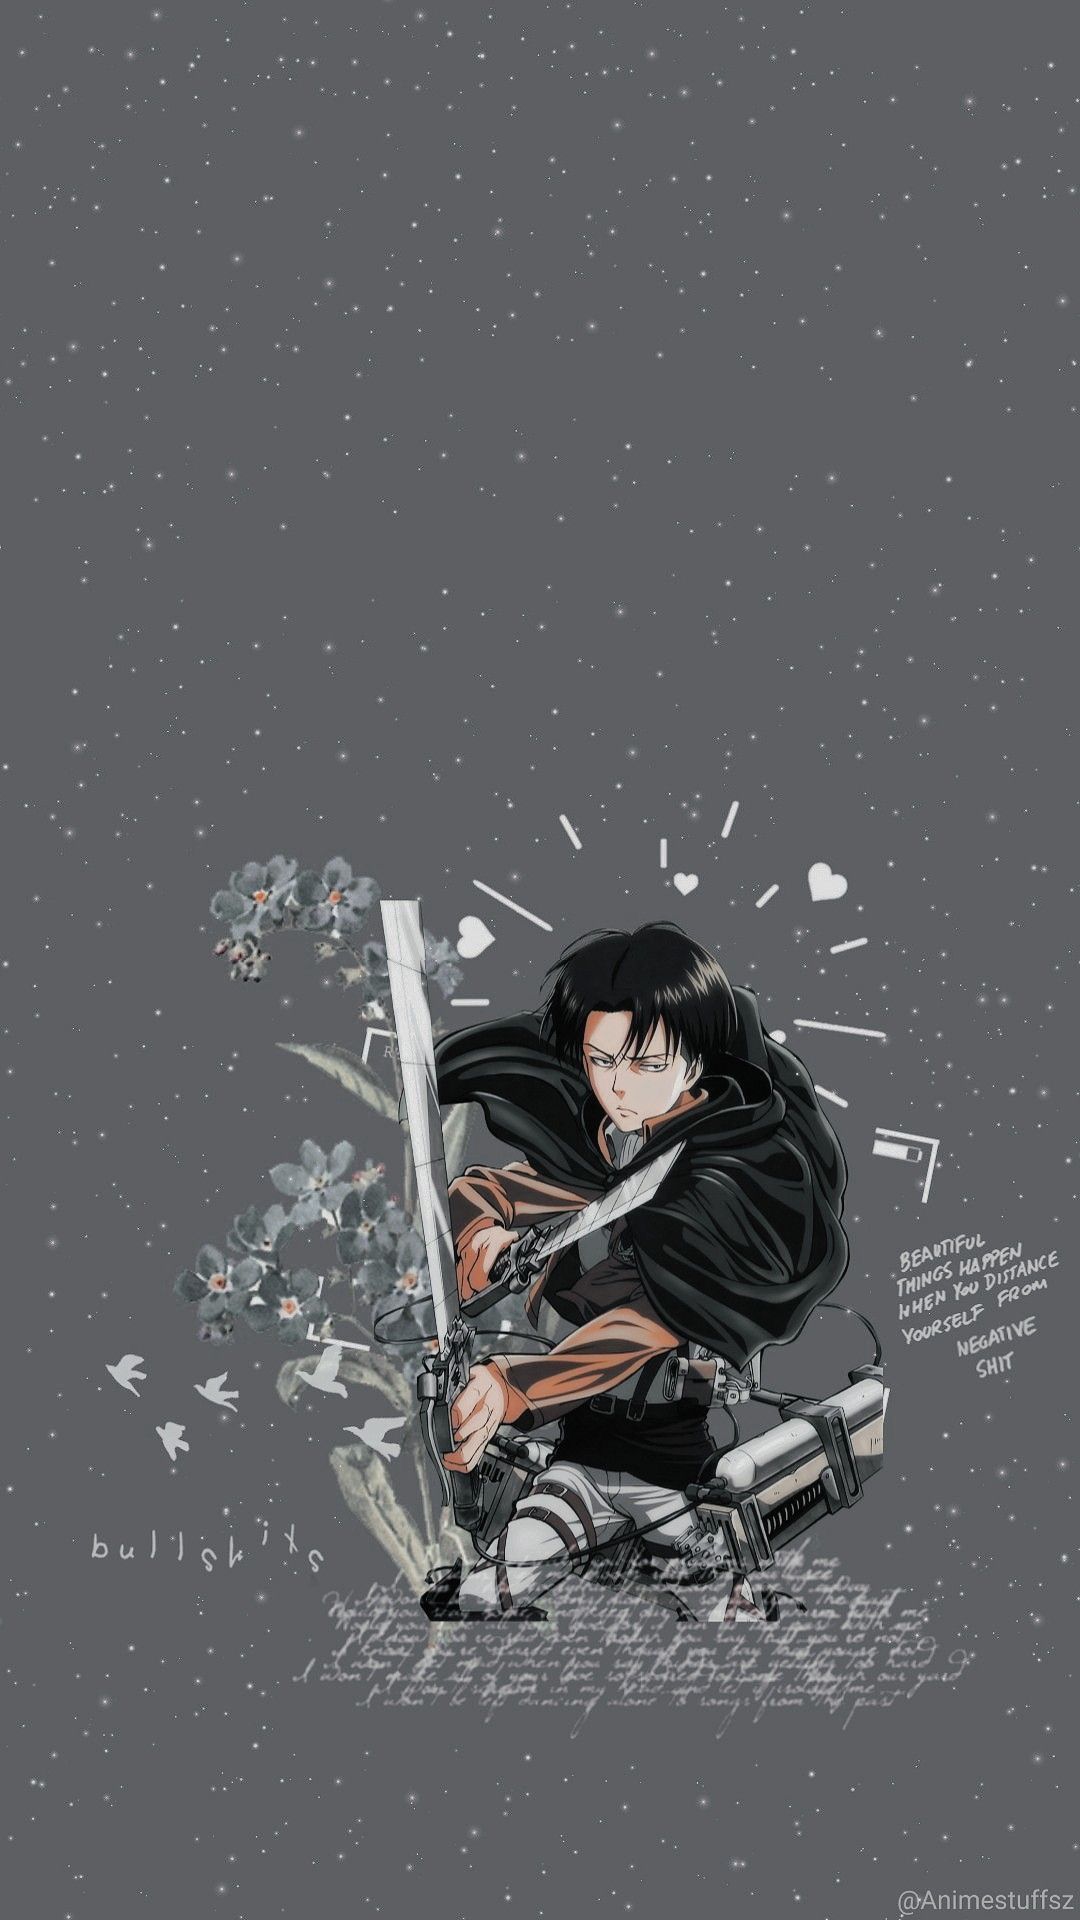 Pin by AliAamir on aot wallpaper in 2020   Attack on titan ...